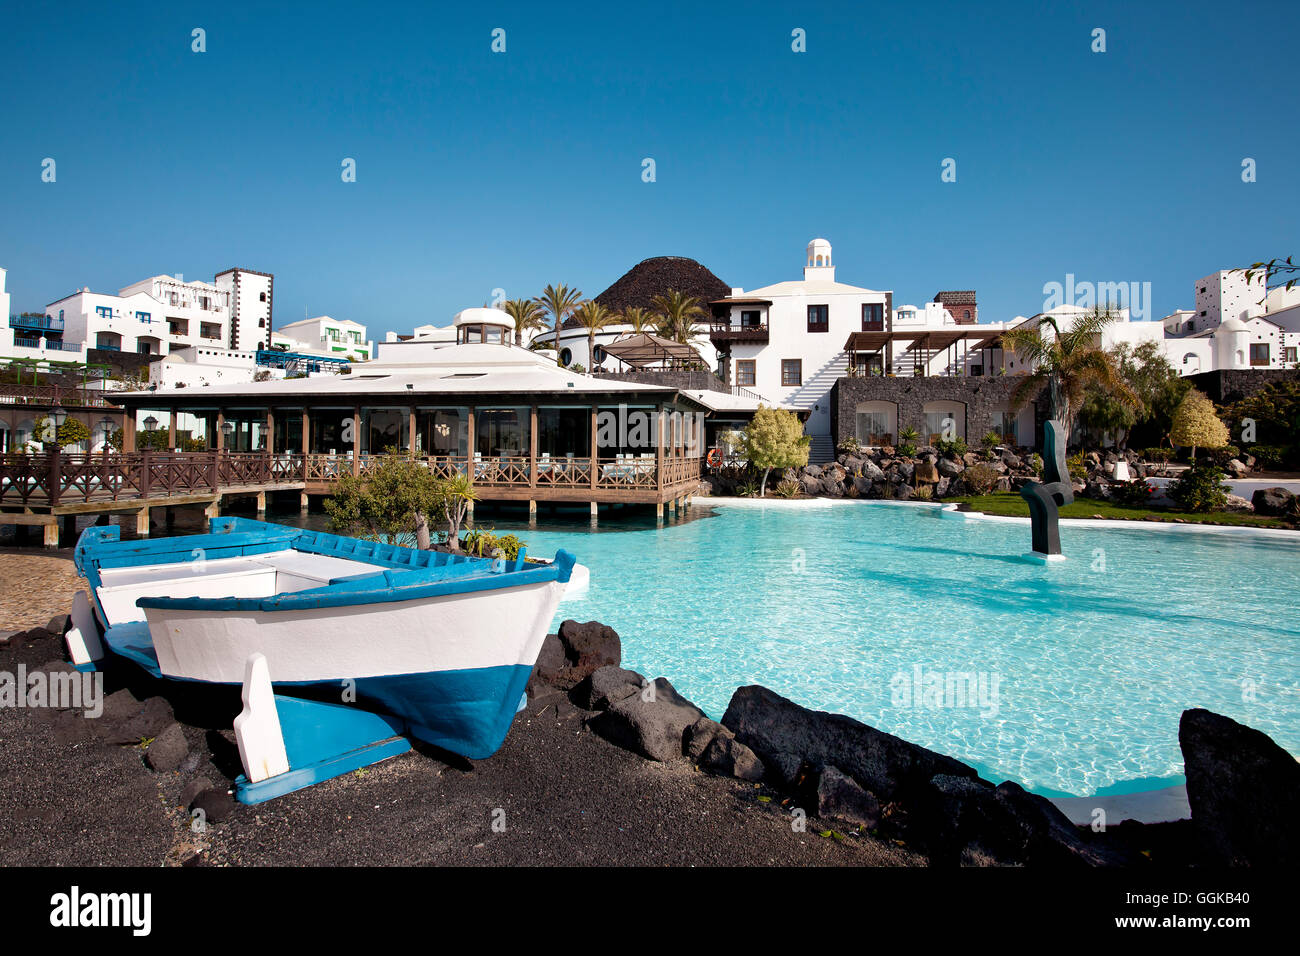 Hotel volcan, Marina Rubicon, Playa Blanca, Lanzarote, Canary Islands, Spain - Stock Image